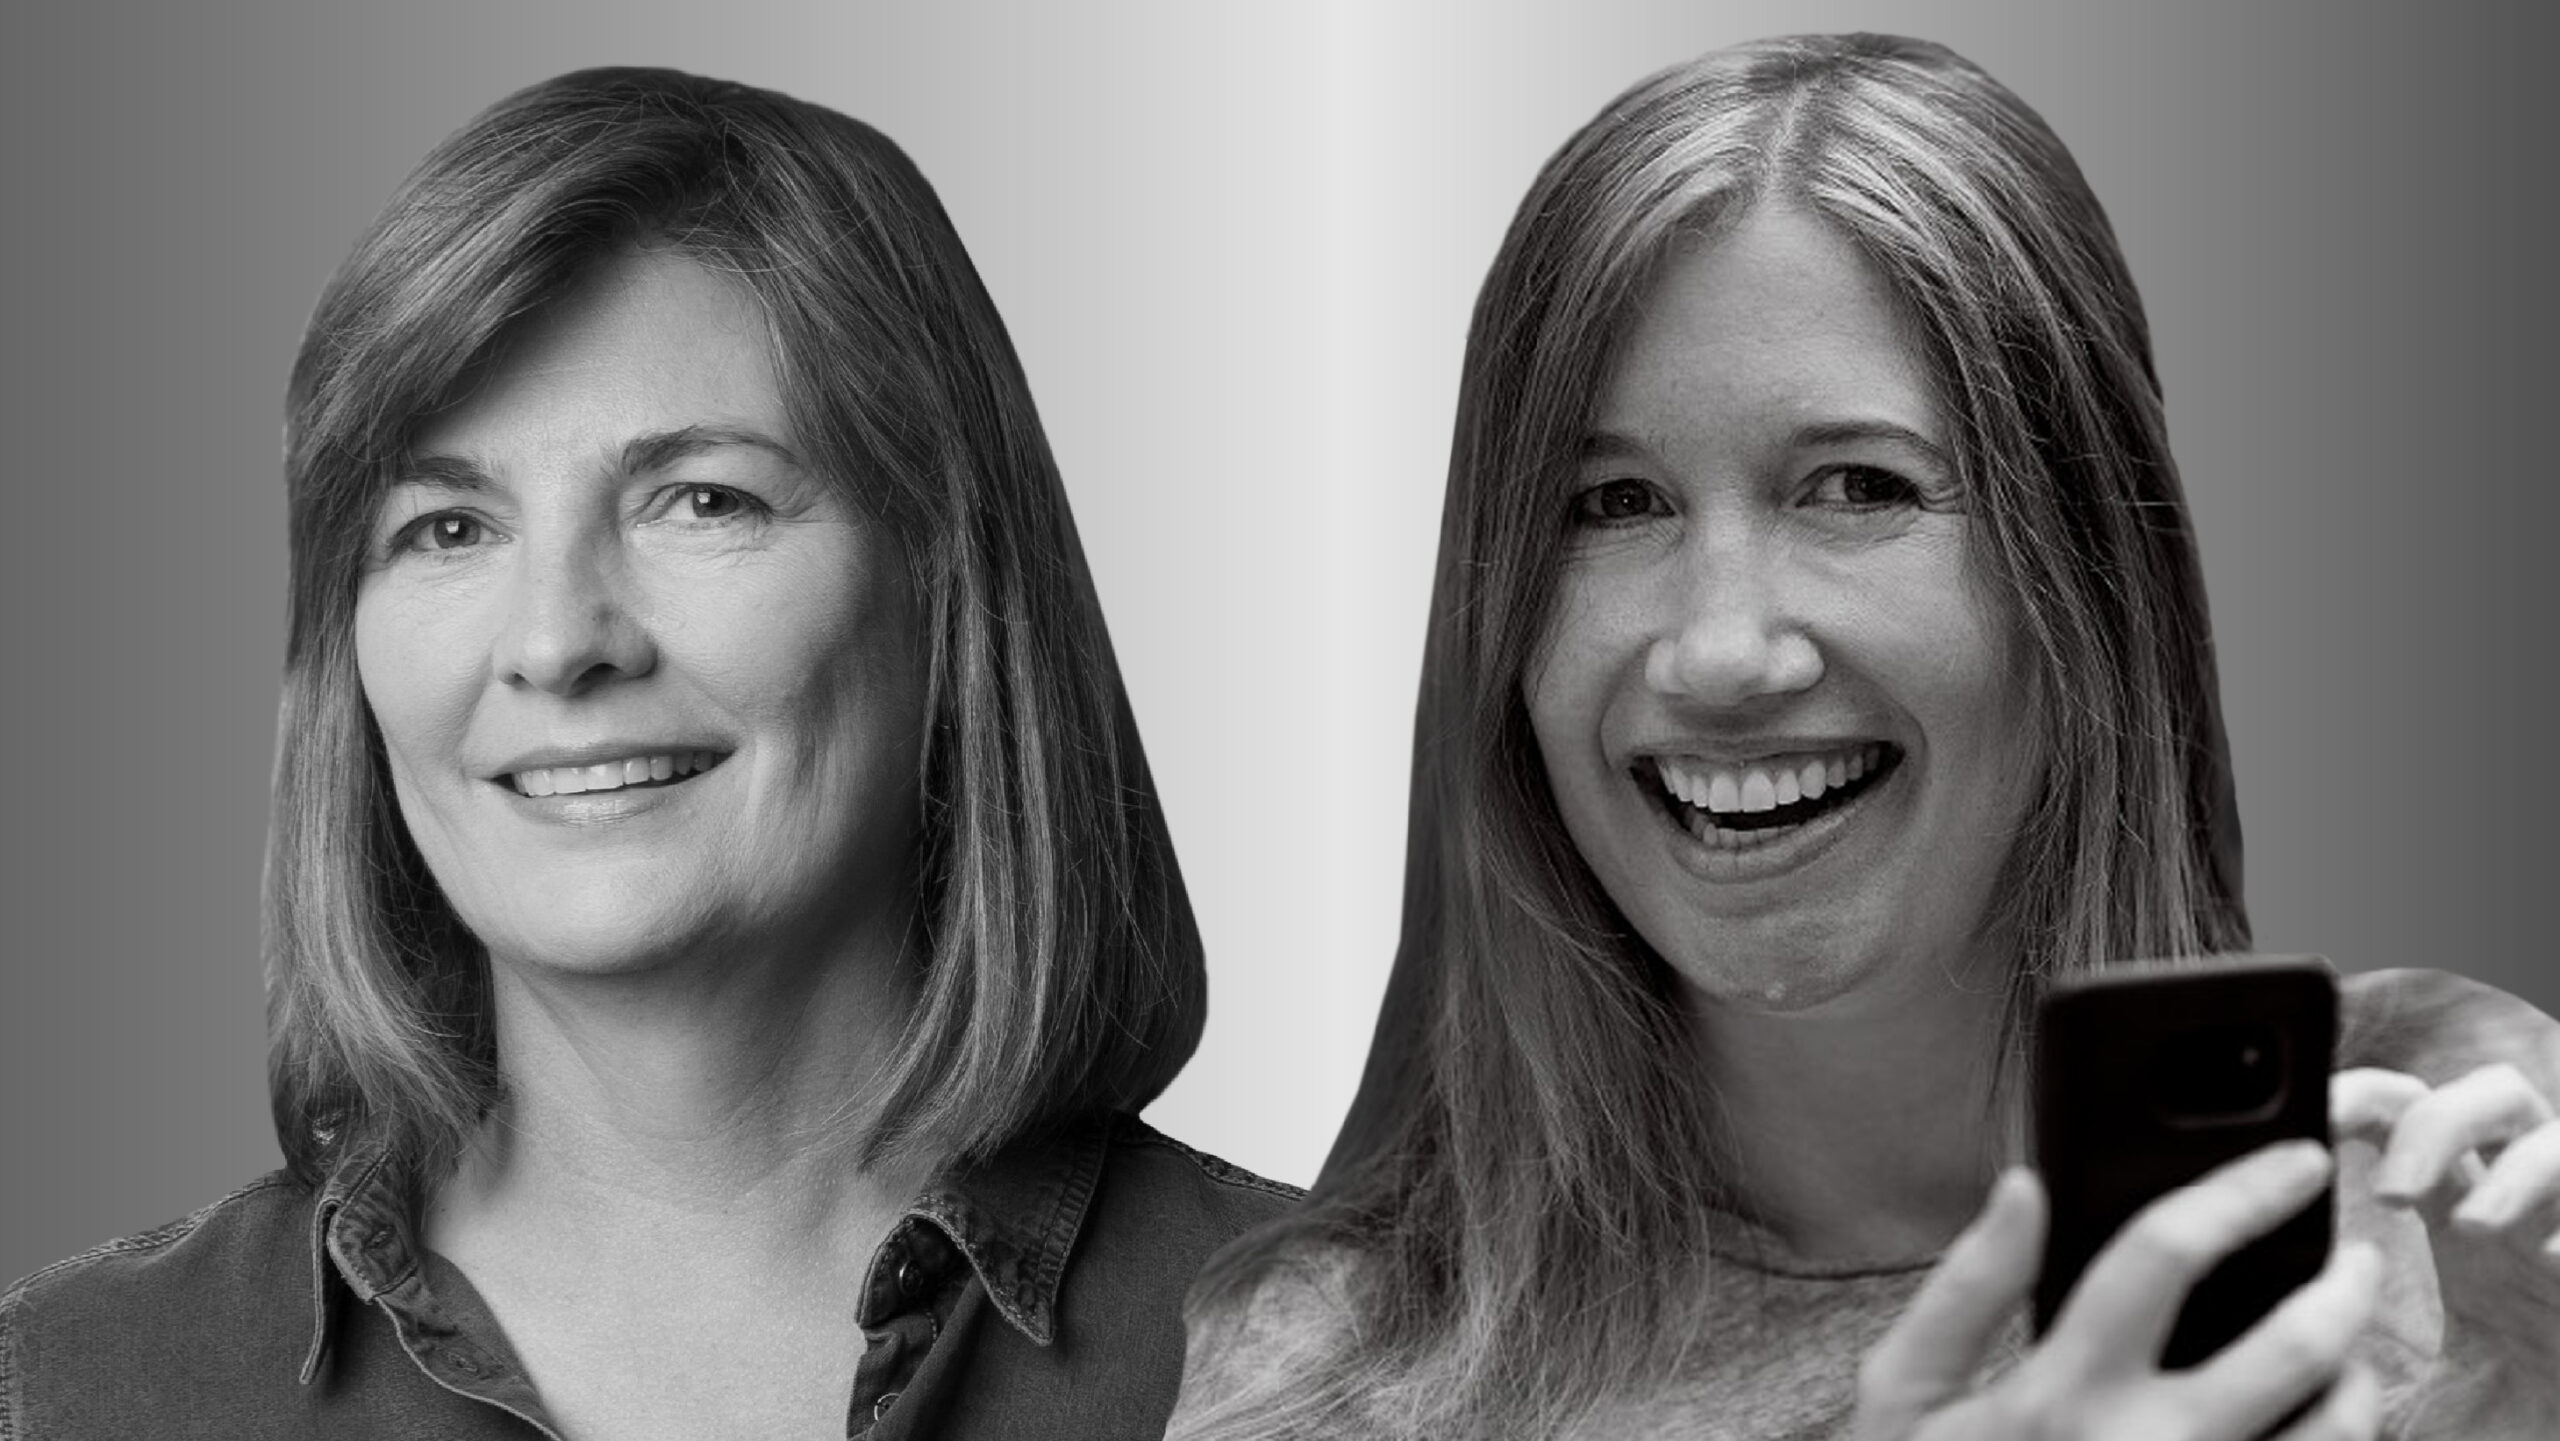 Two women side by side, Abigail Sellen on the left and Jaime Teevan on the right, in black and white smile and look forward. Teevan is holding a cell phone.